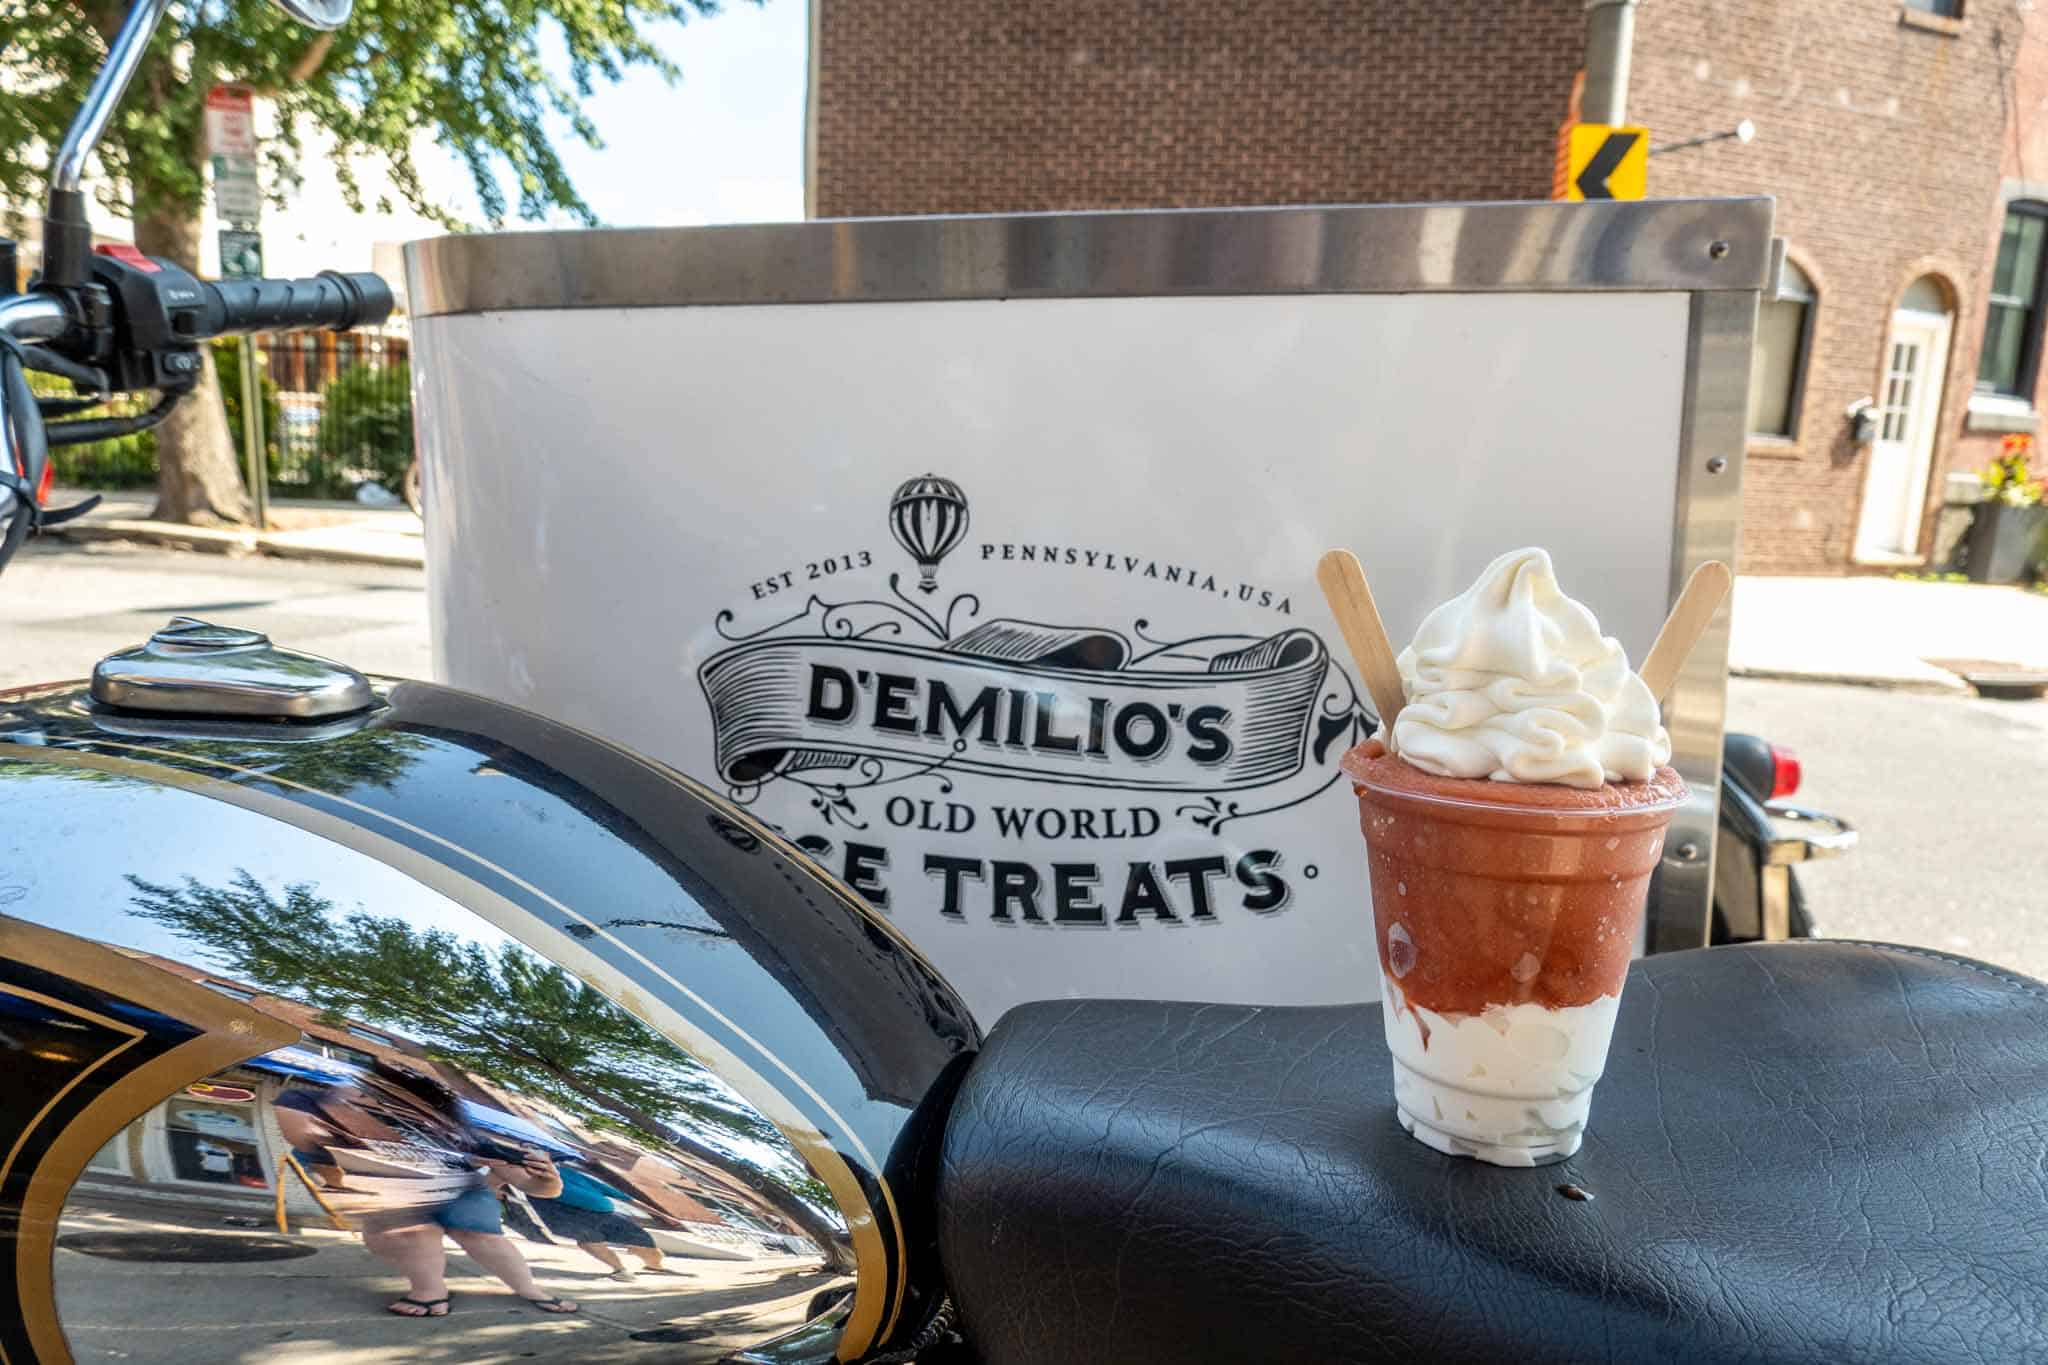 Cup filled with vanilla ice cream and birch beer water ice beside sign for D'Emilio's Old World Ice Treats